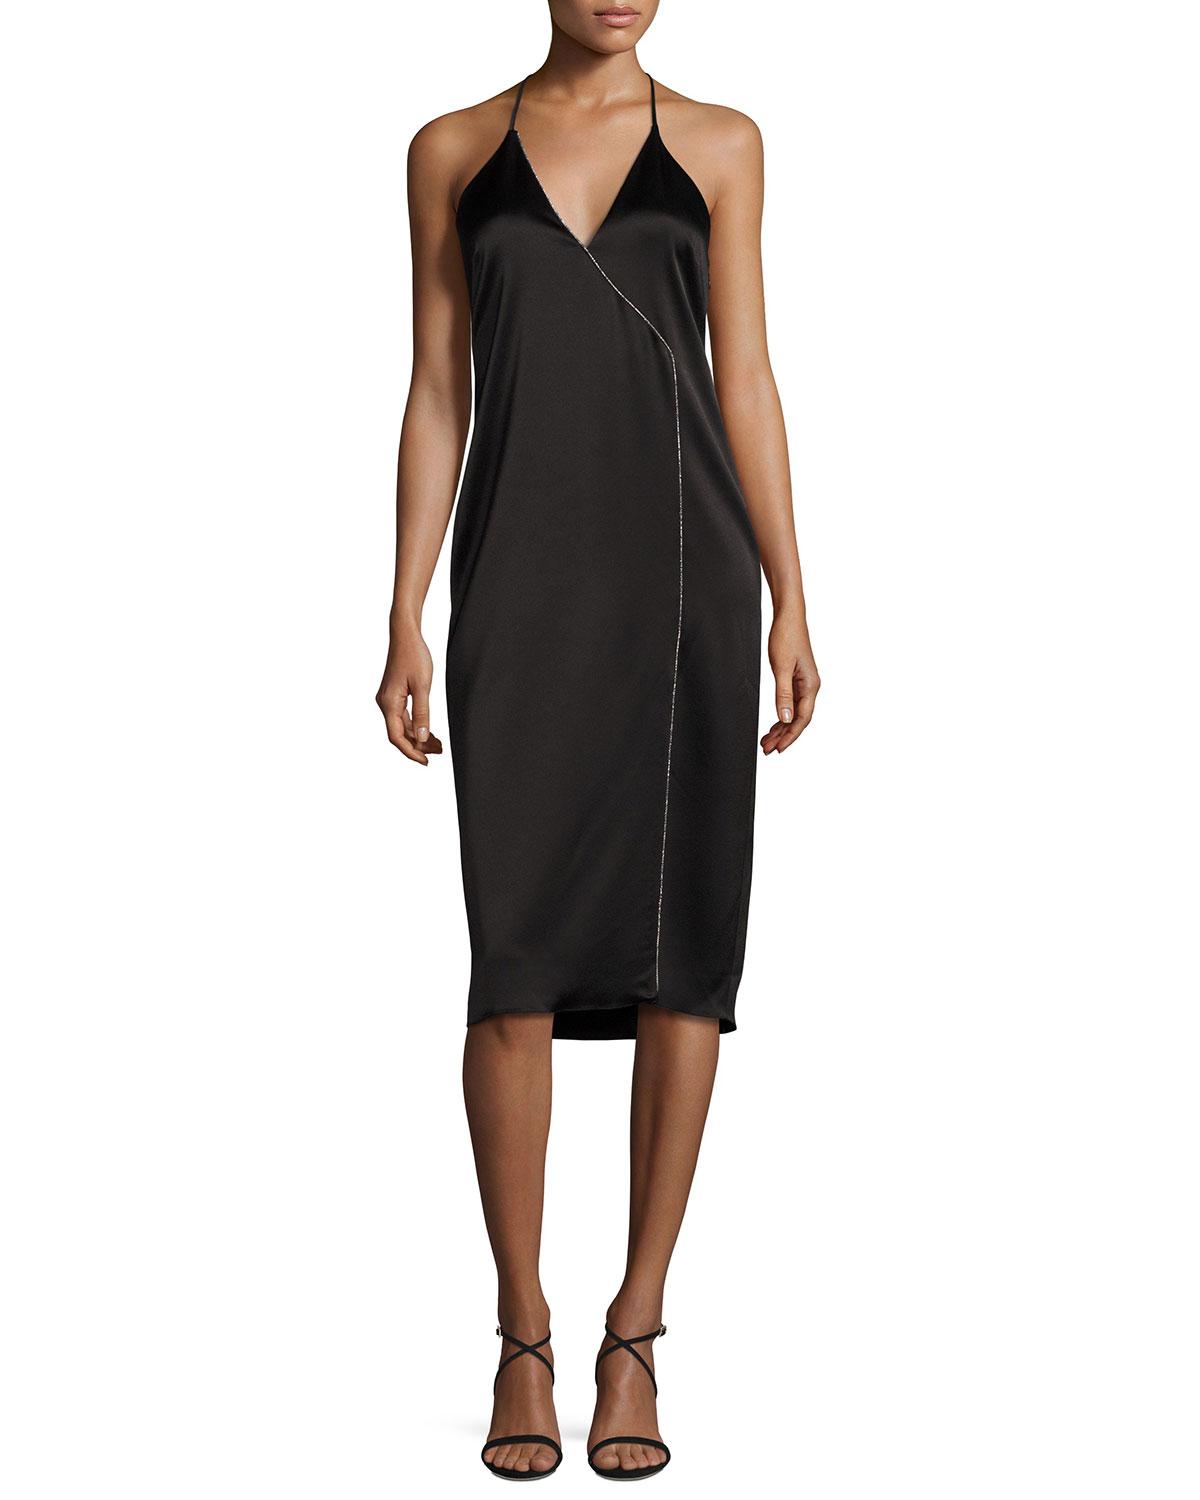 Sleeveless Strappy Satin Cocktail Dress, Black